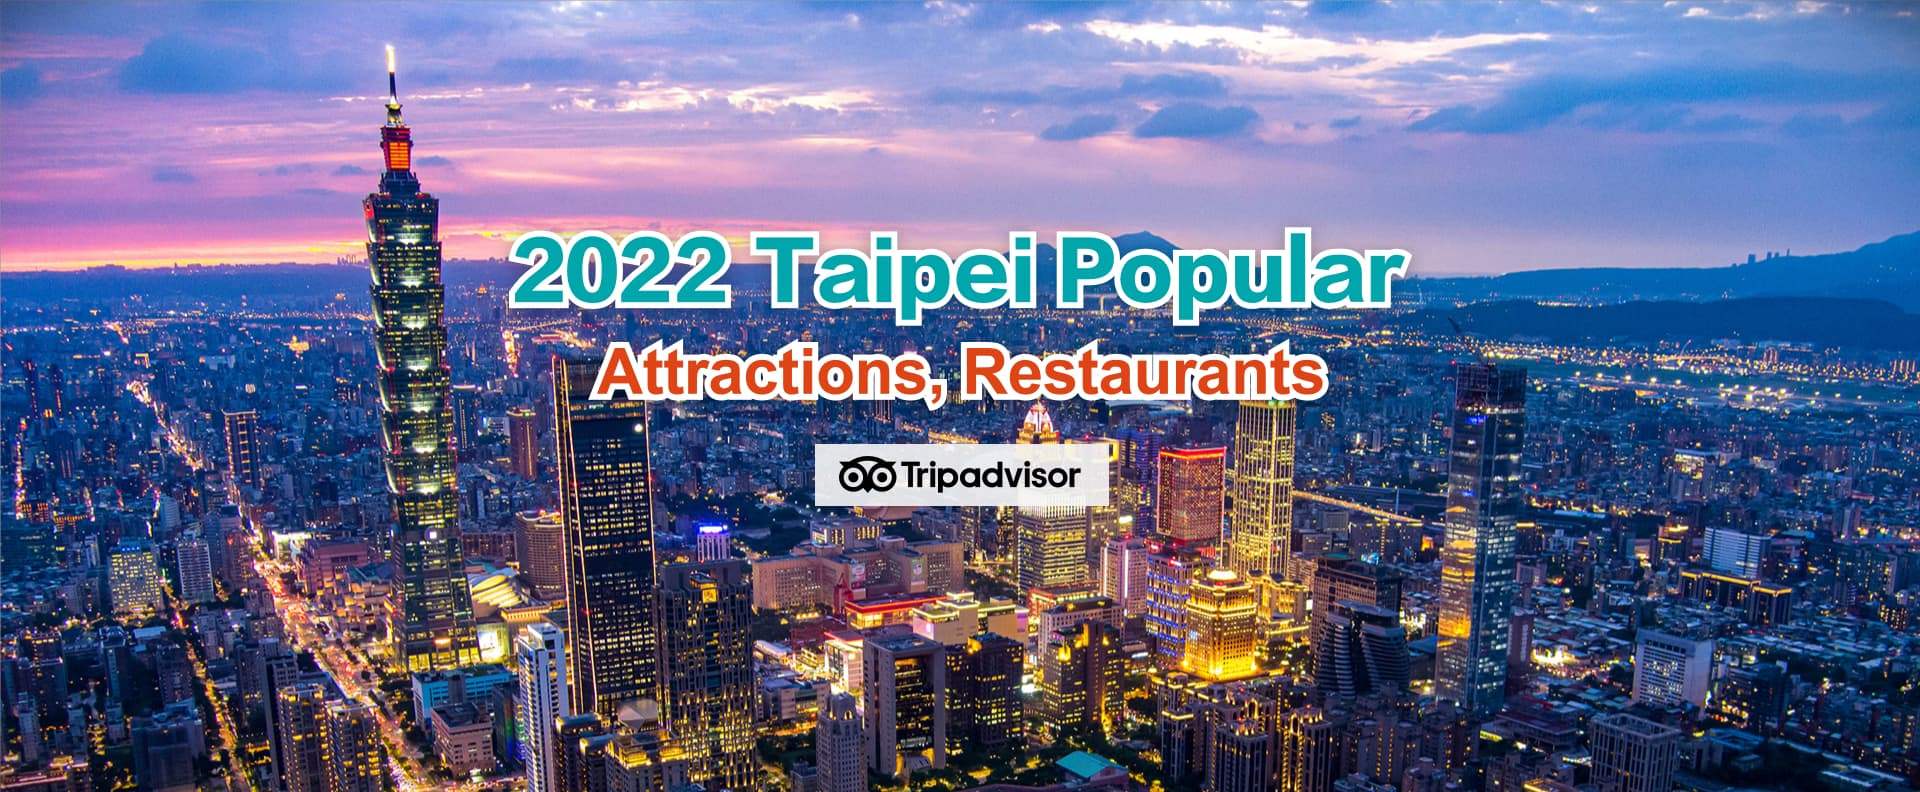 2020 Taipei Popular Attractions, Restaurants